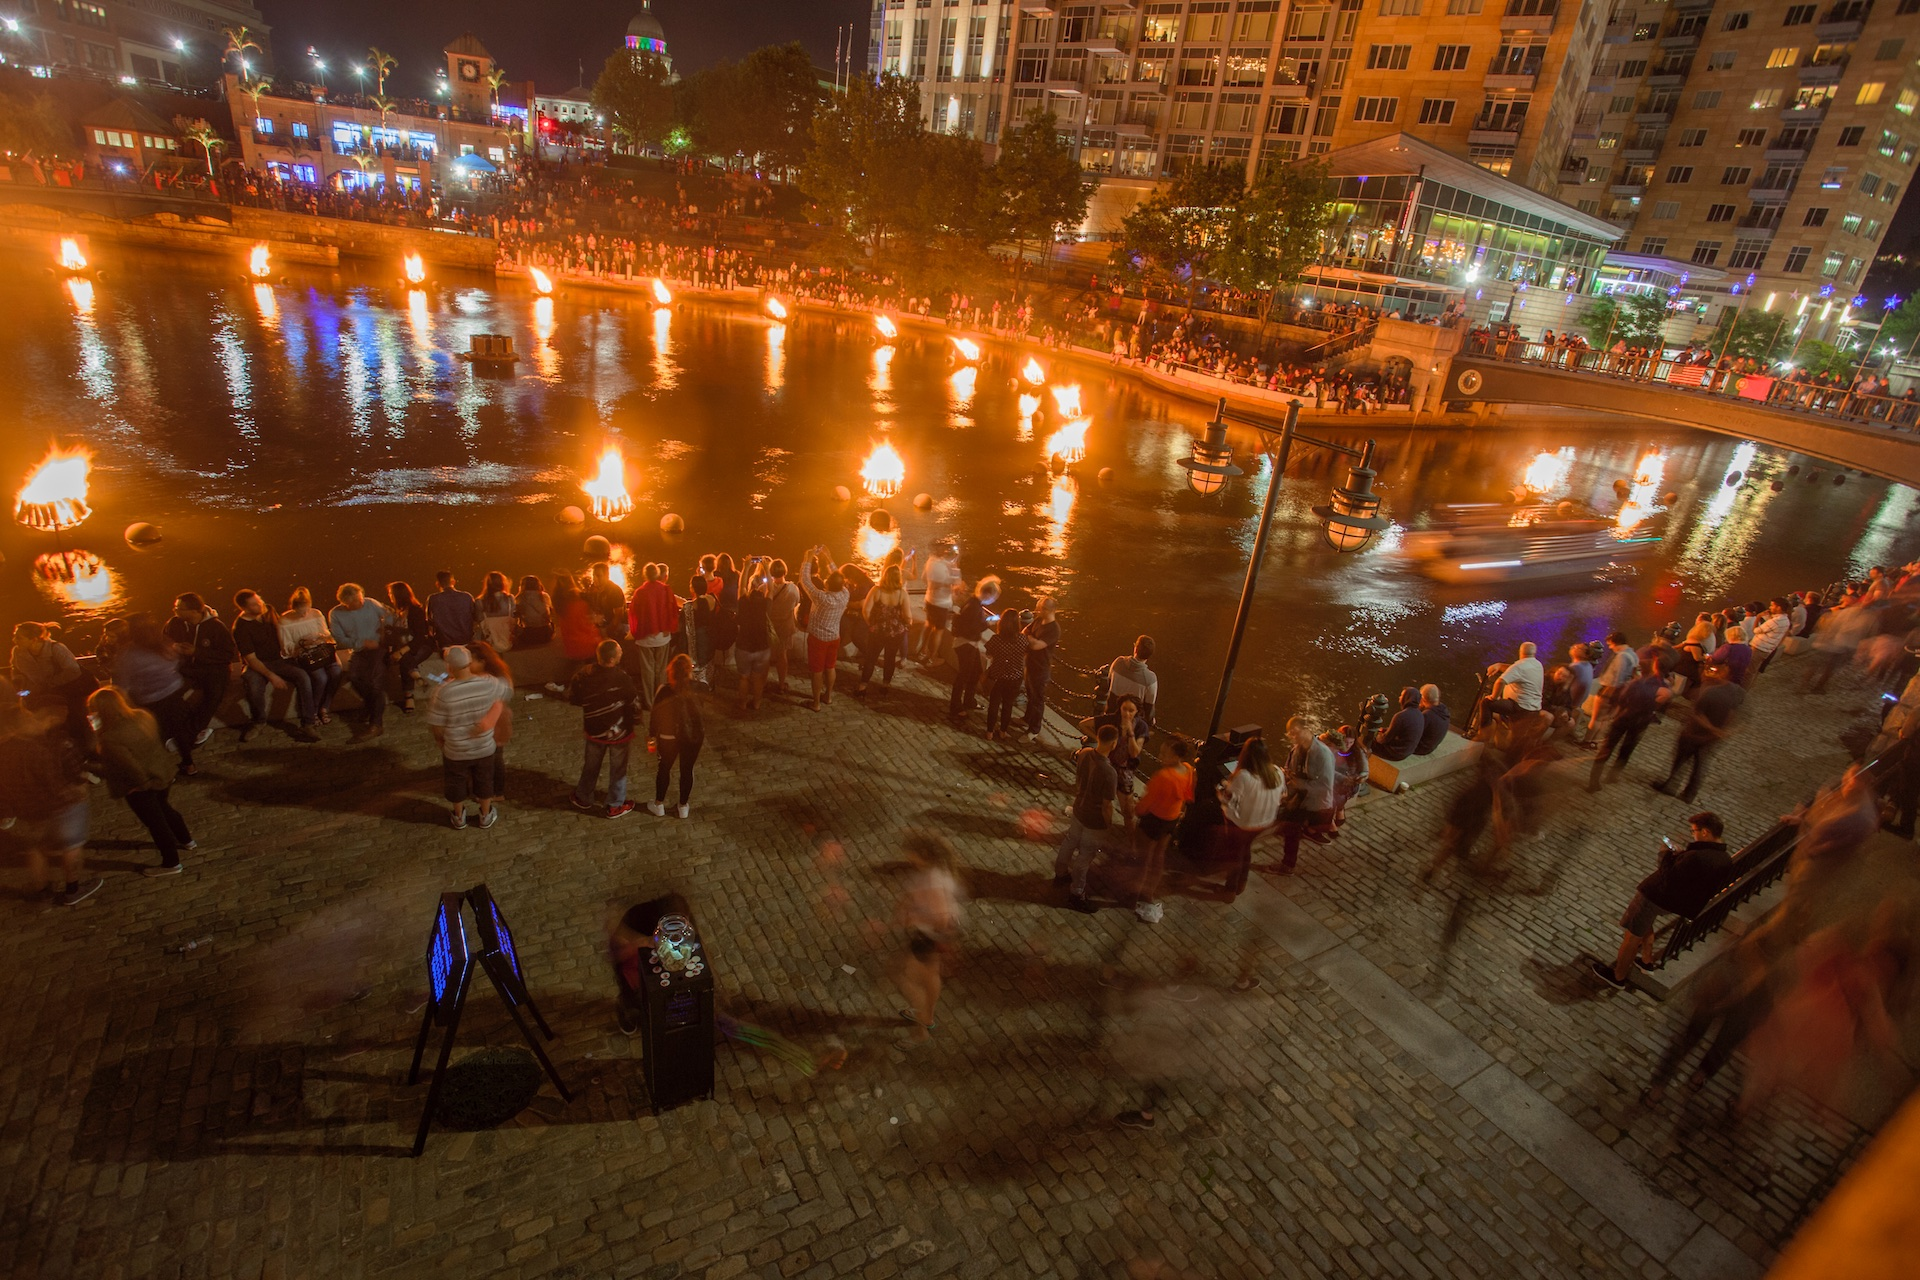 after-the-fires-are-lit-during-the-waterfire-basin-lighting-for-ri-day-of-portugal_40984420040_o